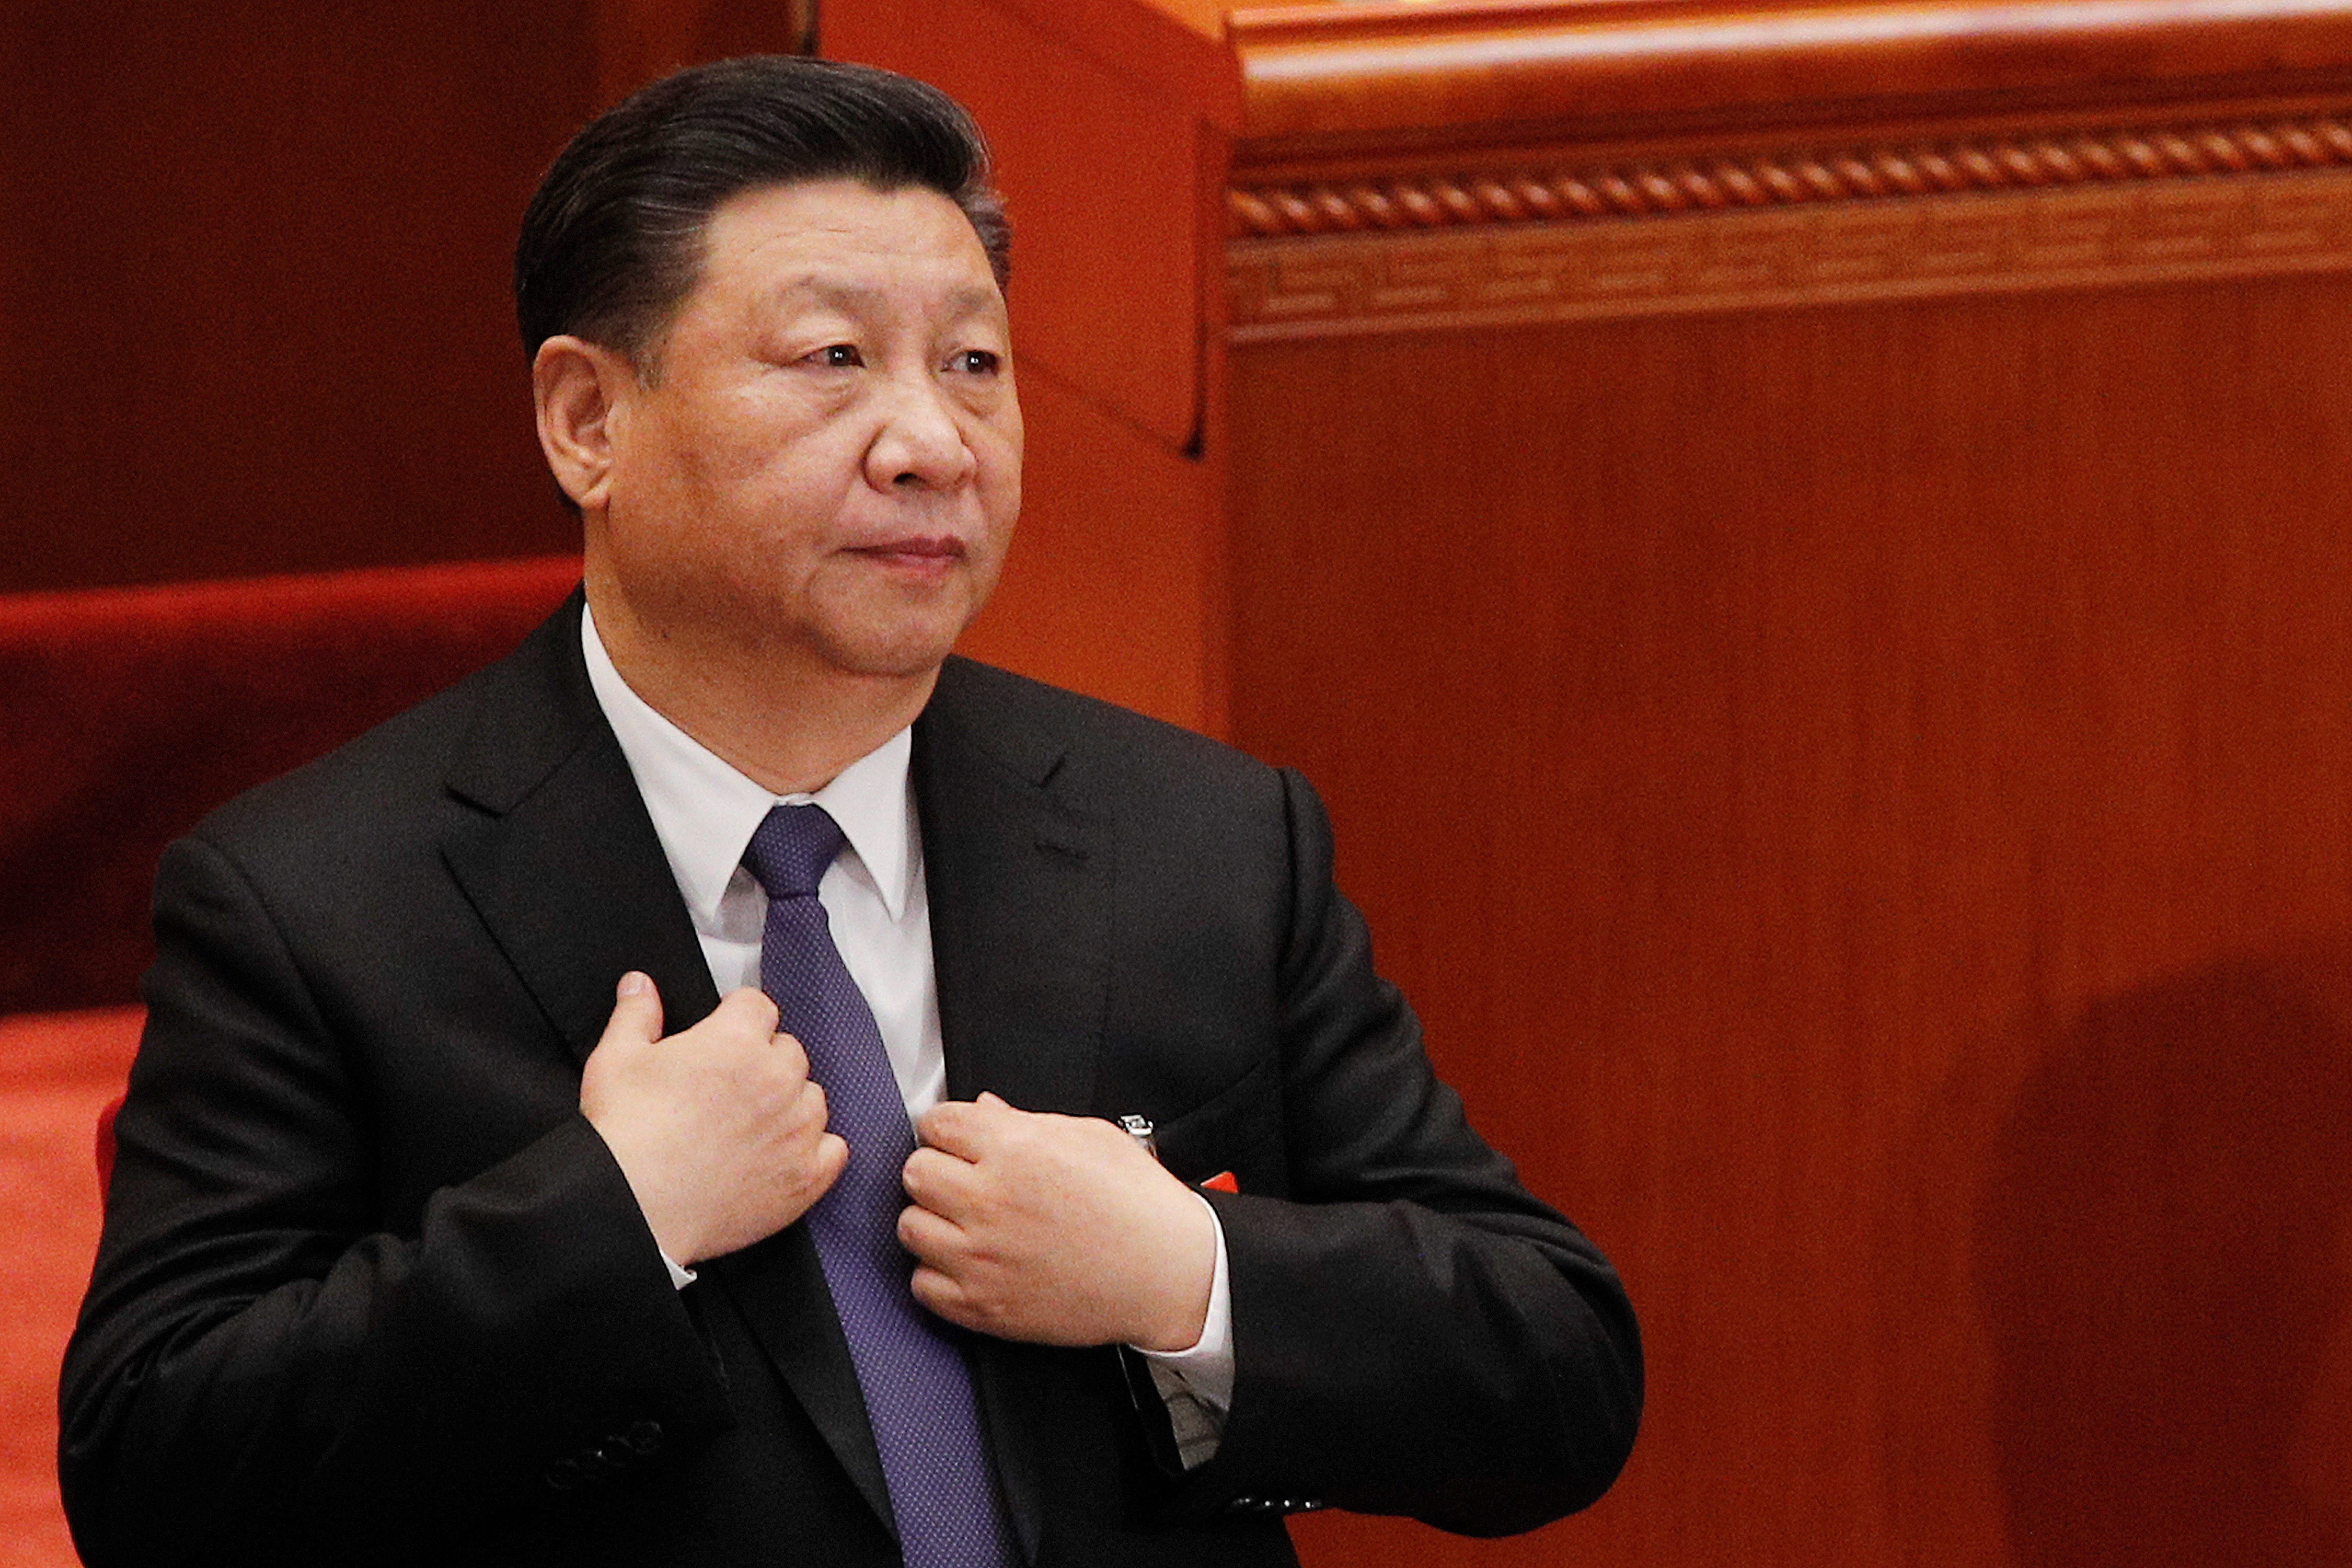 Xi Jinping's corruption crackdown in China cements grip on power, changes look of Beijing